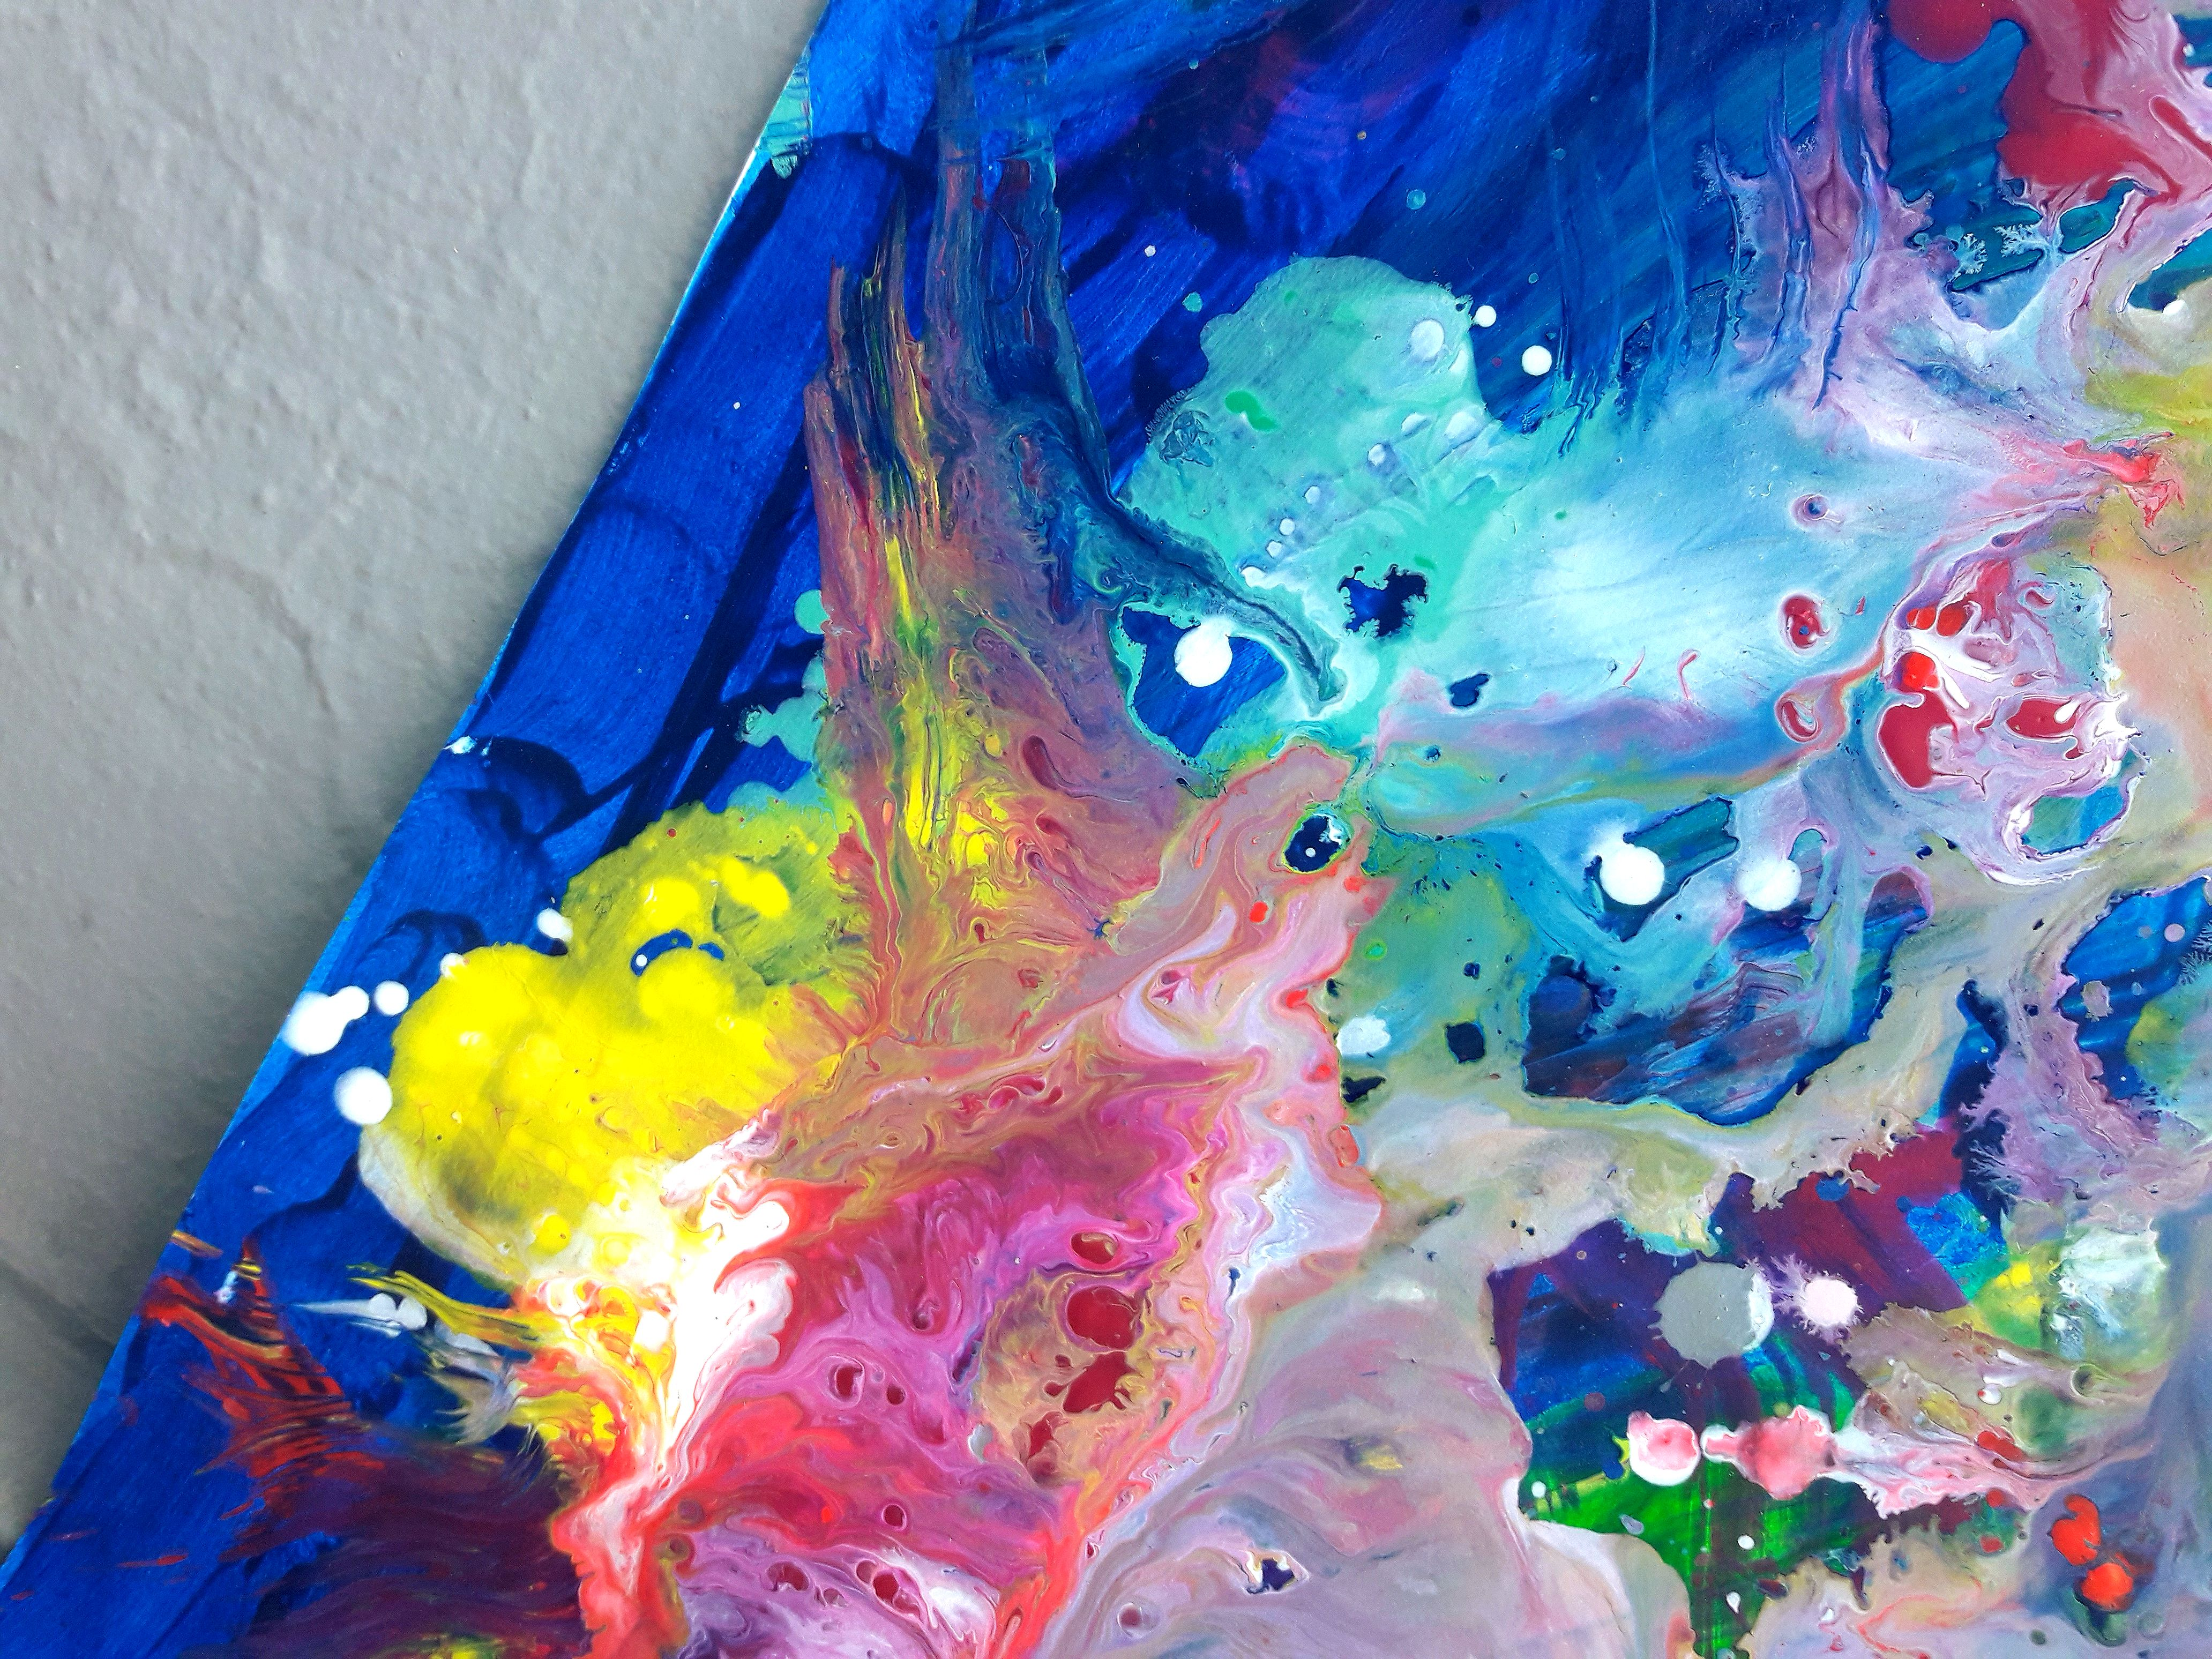 4128x3096 Our Dance Around The Coral Reefs Original Abstract Acrylic